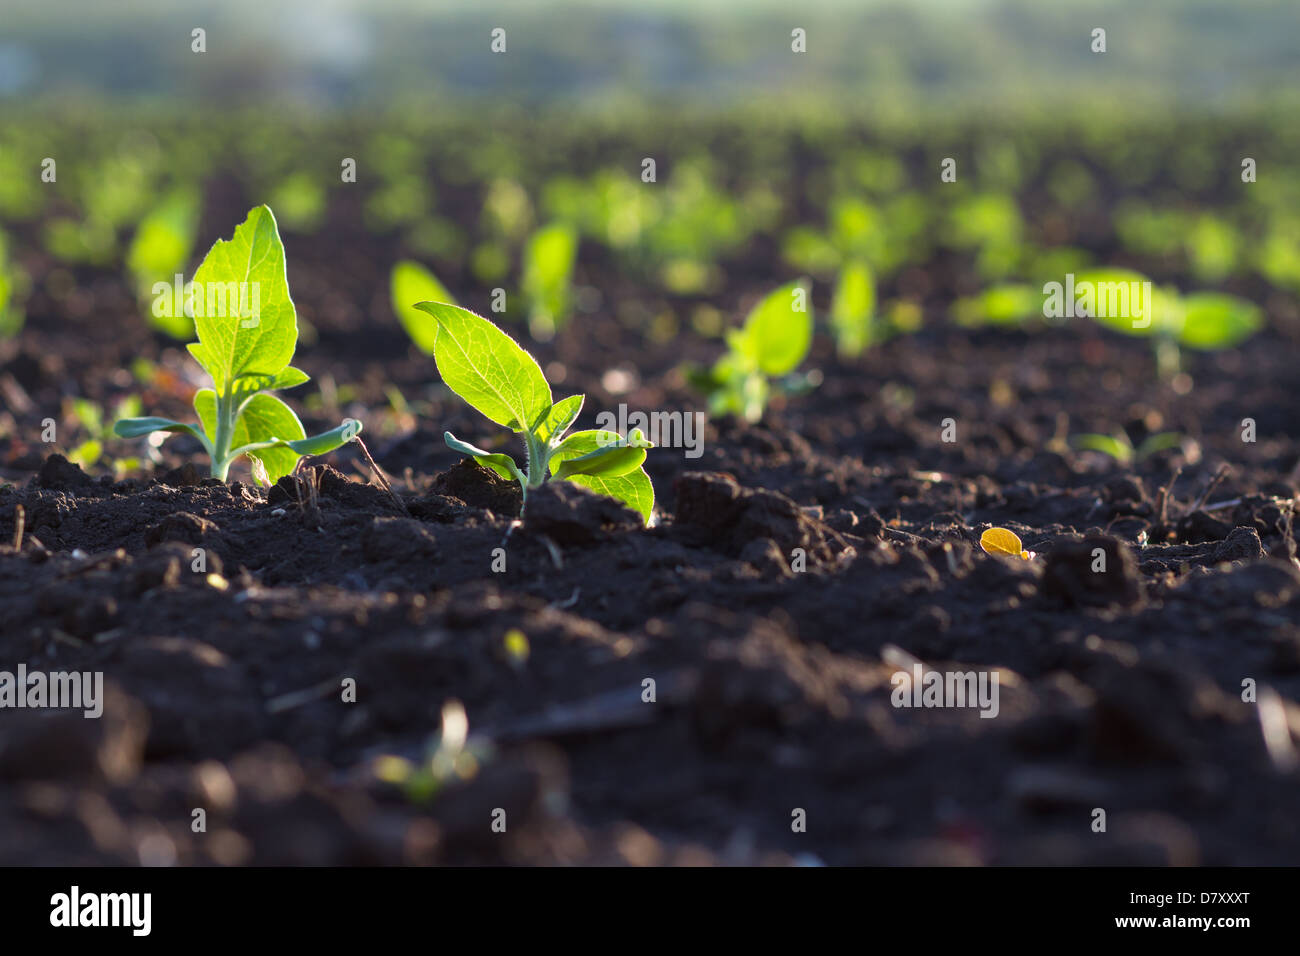 Crops planted in rich soil get ripe under the sun fast - Stock Image